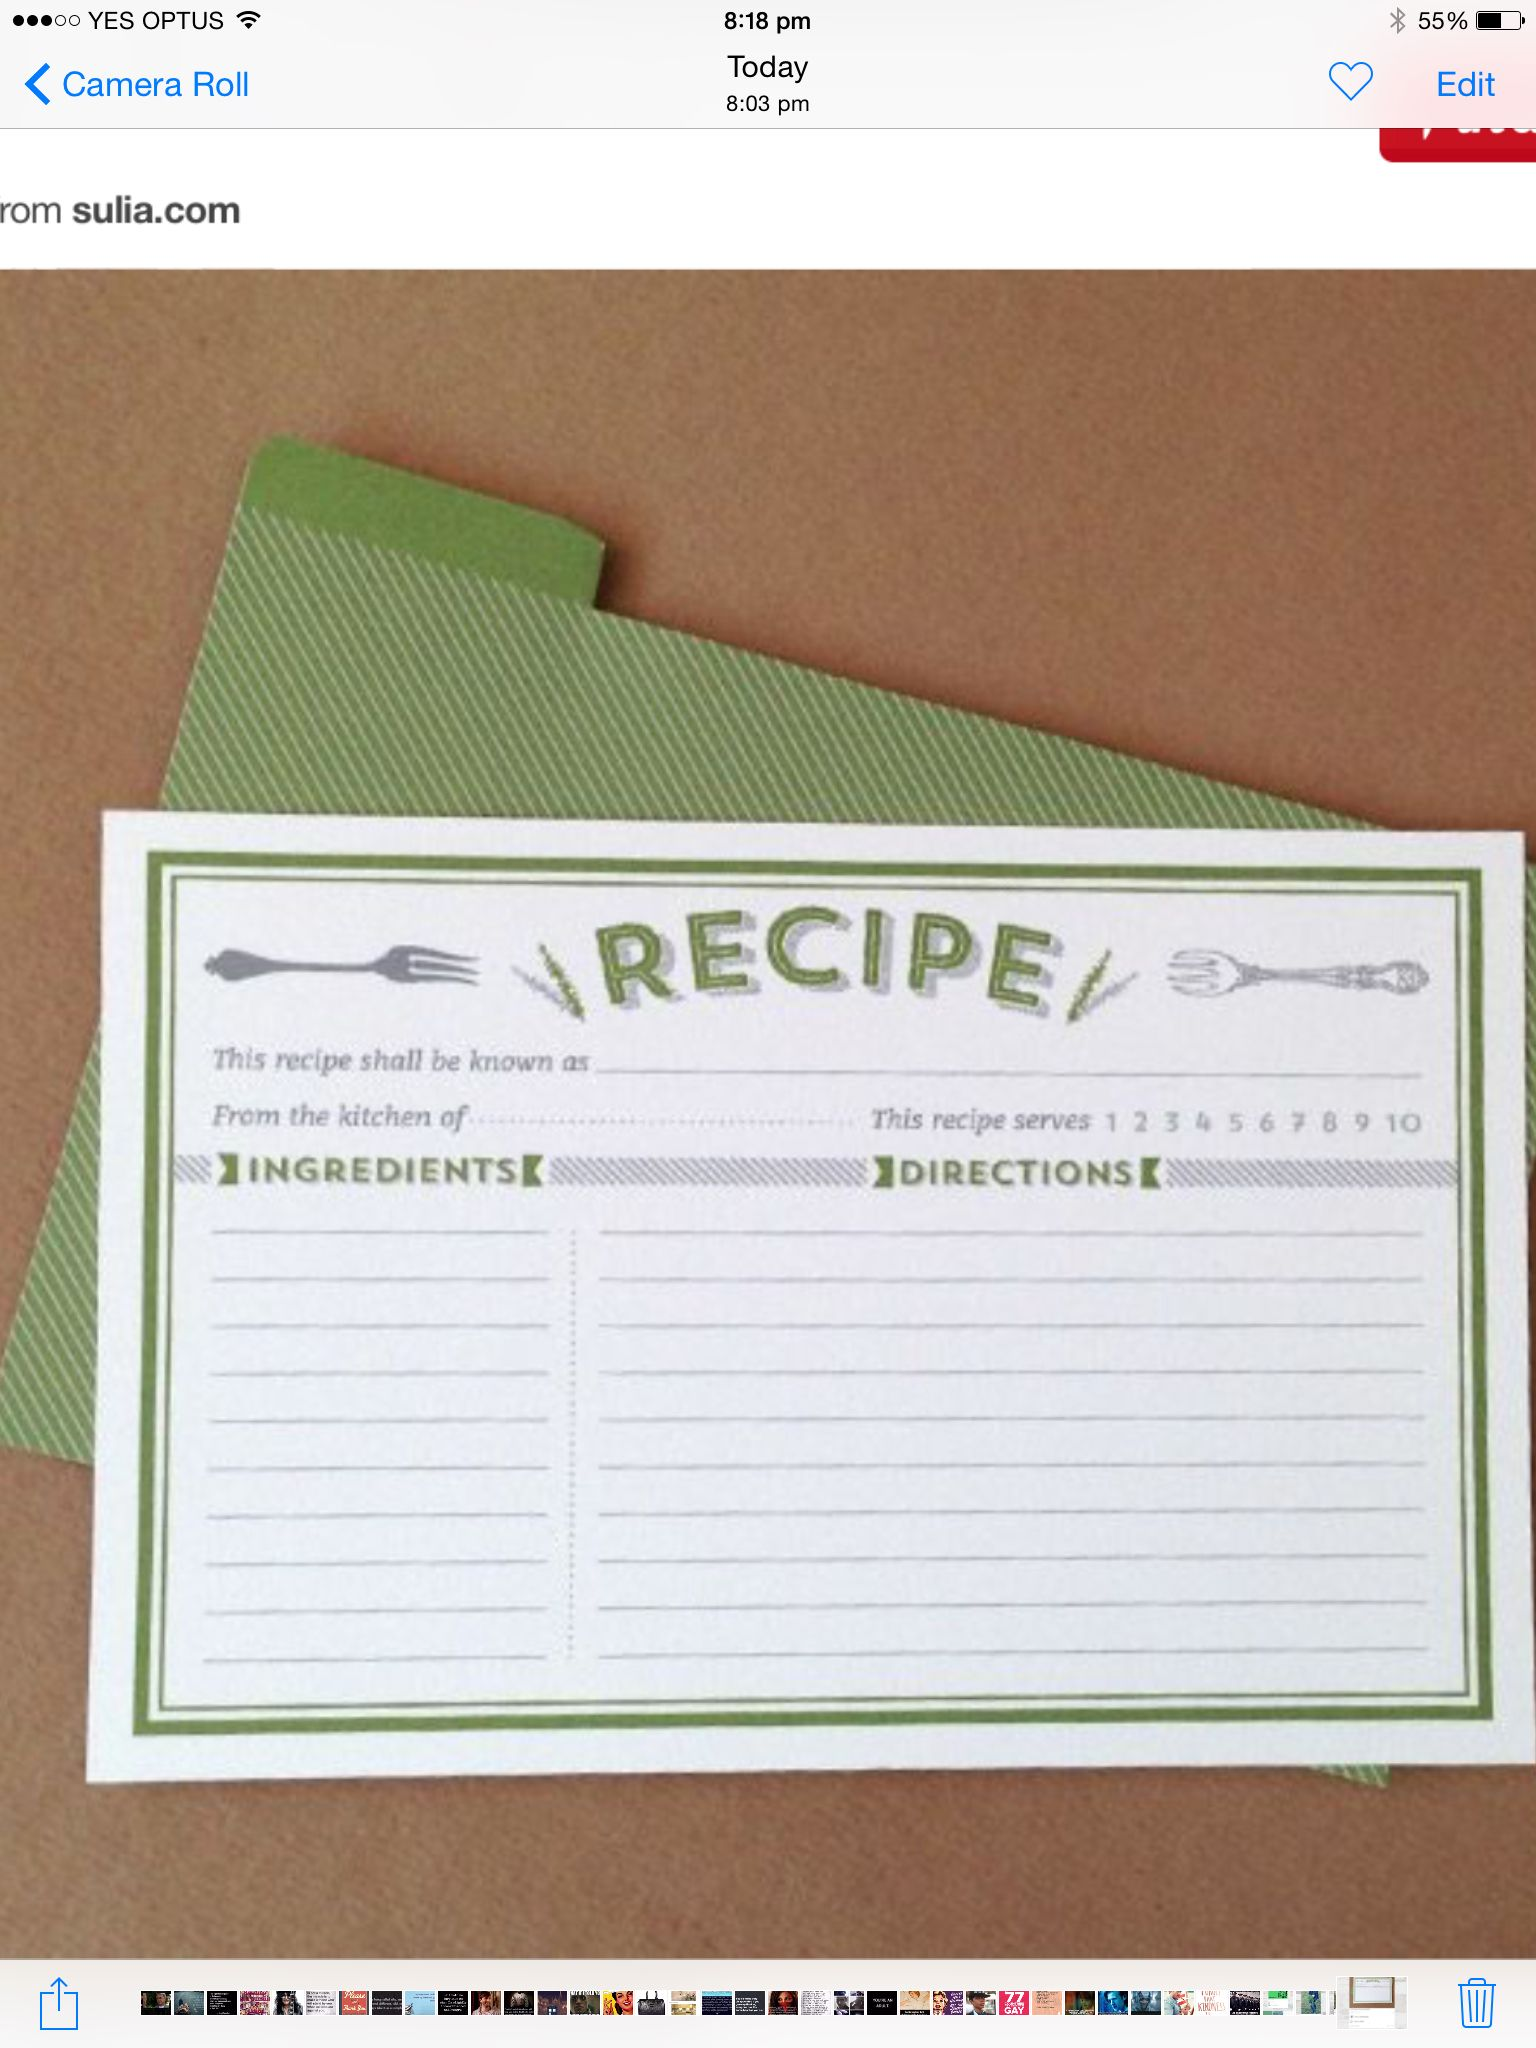 Free Recipe Card Templates For Word Awesome Pinheather Beachell On Yummy Food  Pinterest  Yummy Food Food .